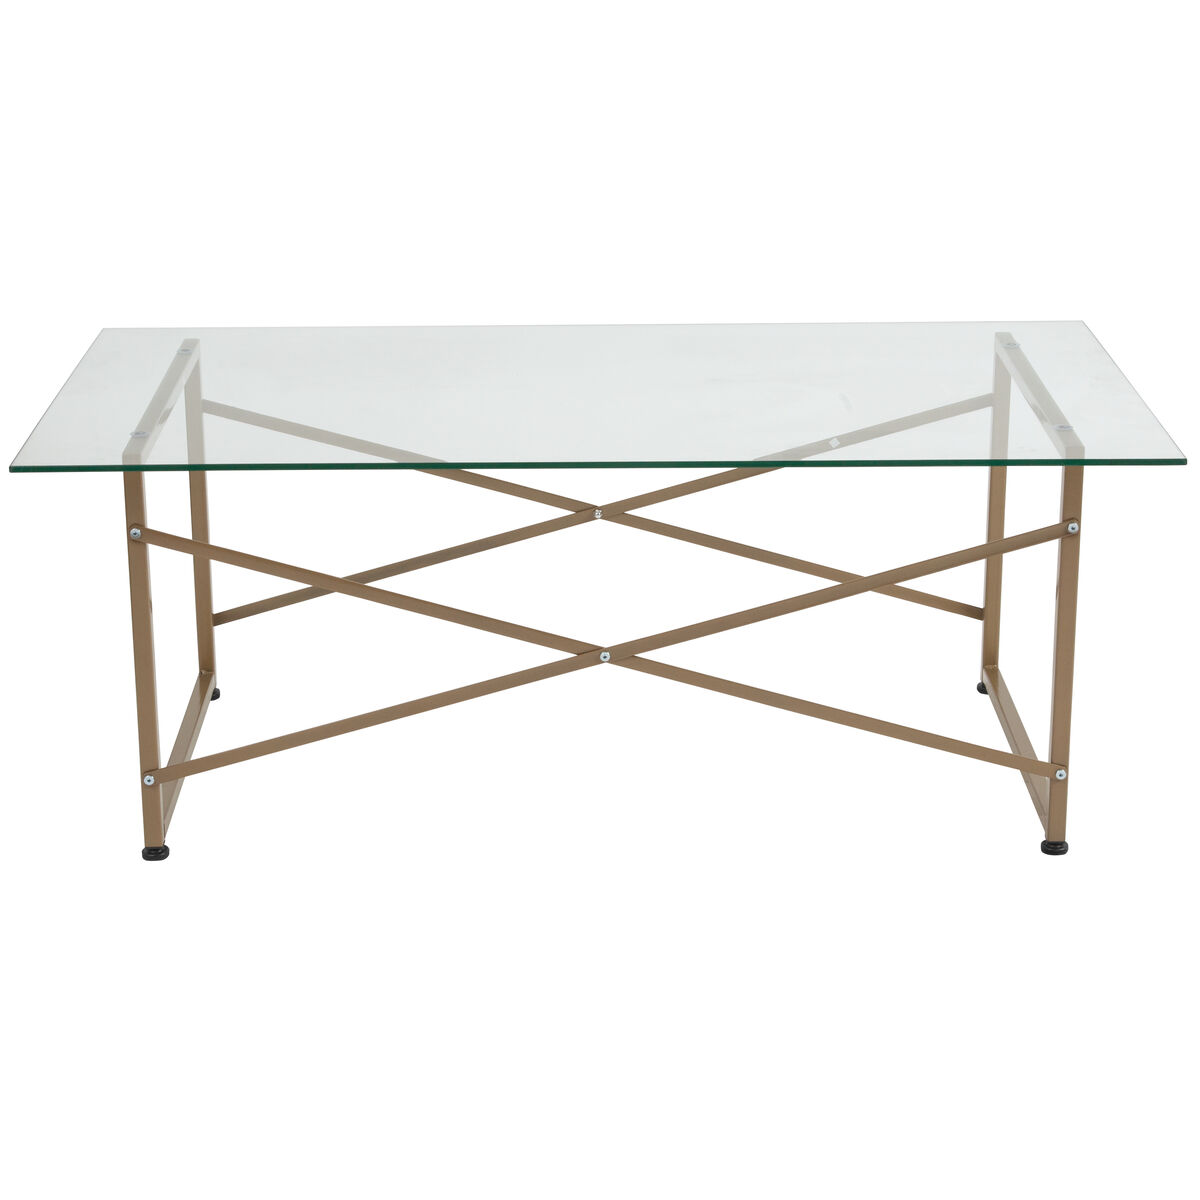 Our mar vista collection glass coffee table with matte gold frame is on sale now